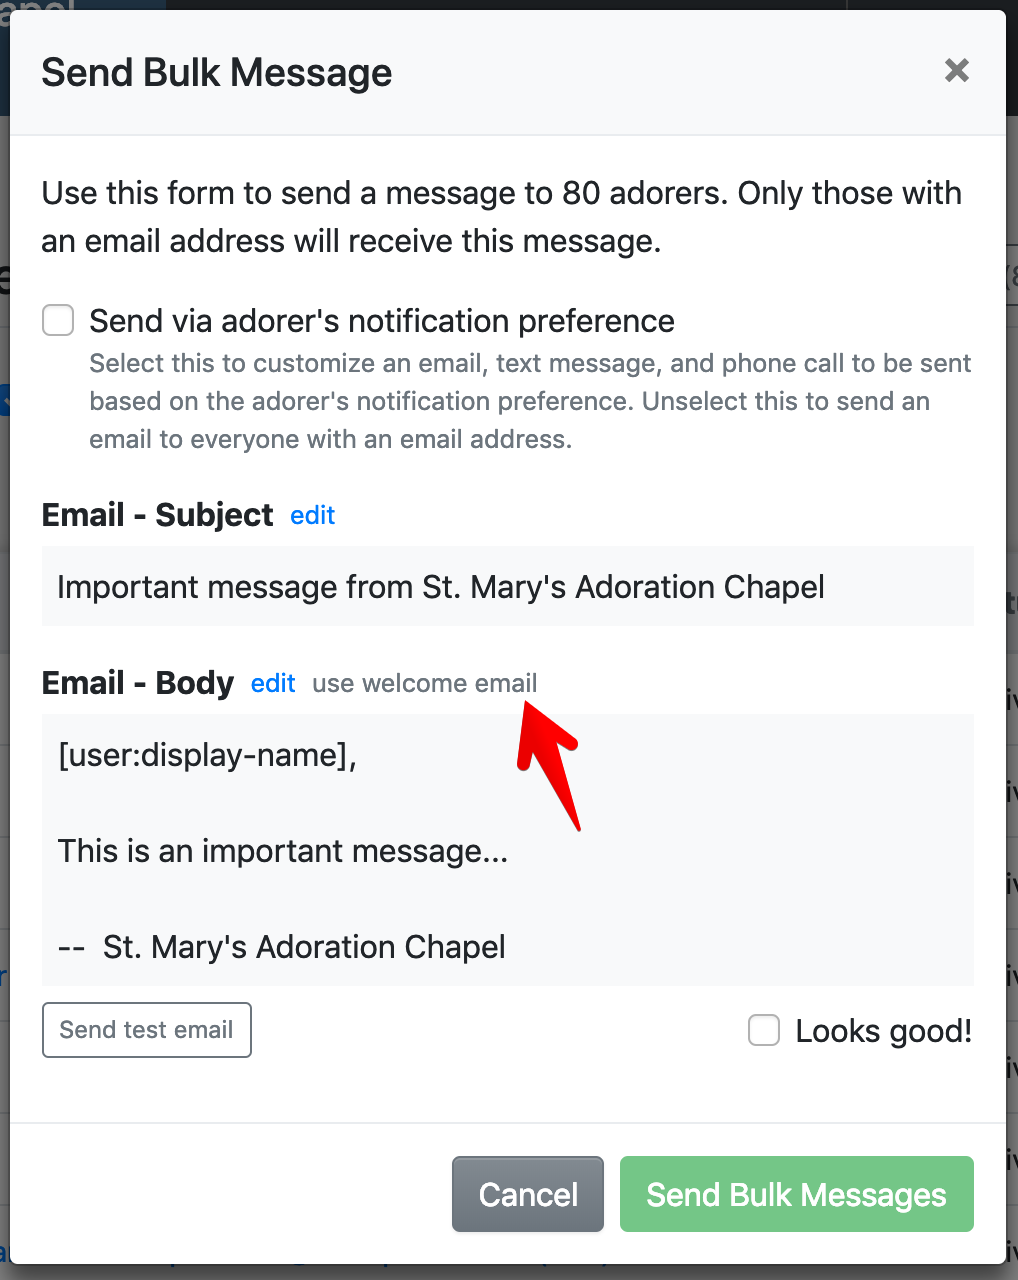 Enable images in your email client to see this screenshot.